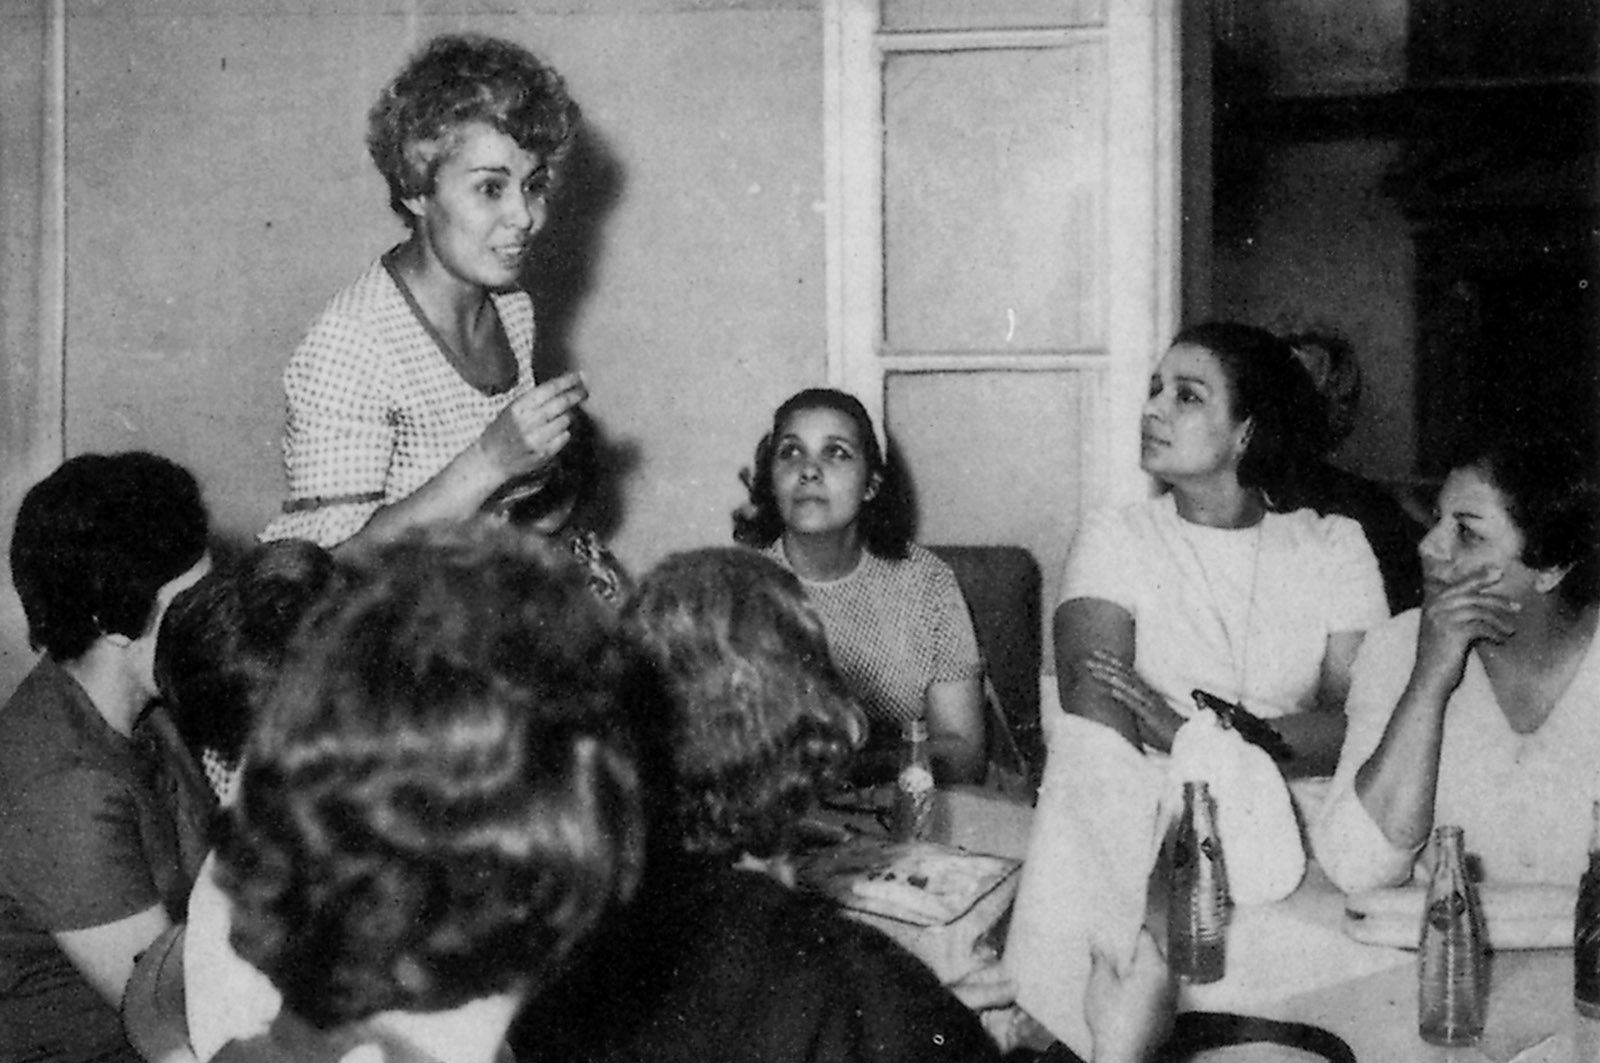 Nawal El Saadawi at the inaugural meeting of the Egyptian Women Writers' Association, Cairo, 1970